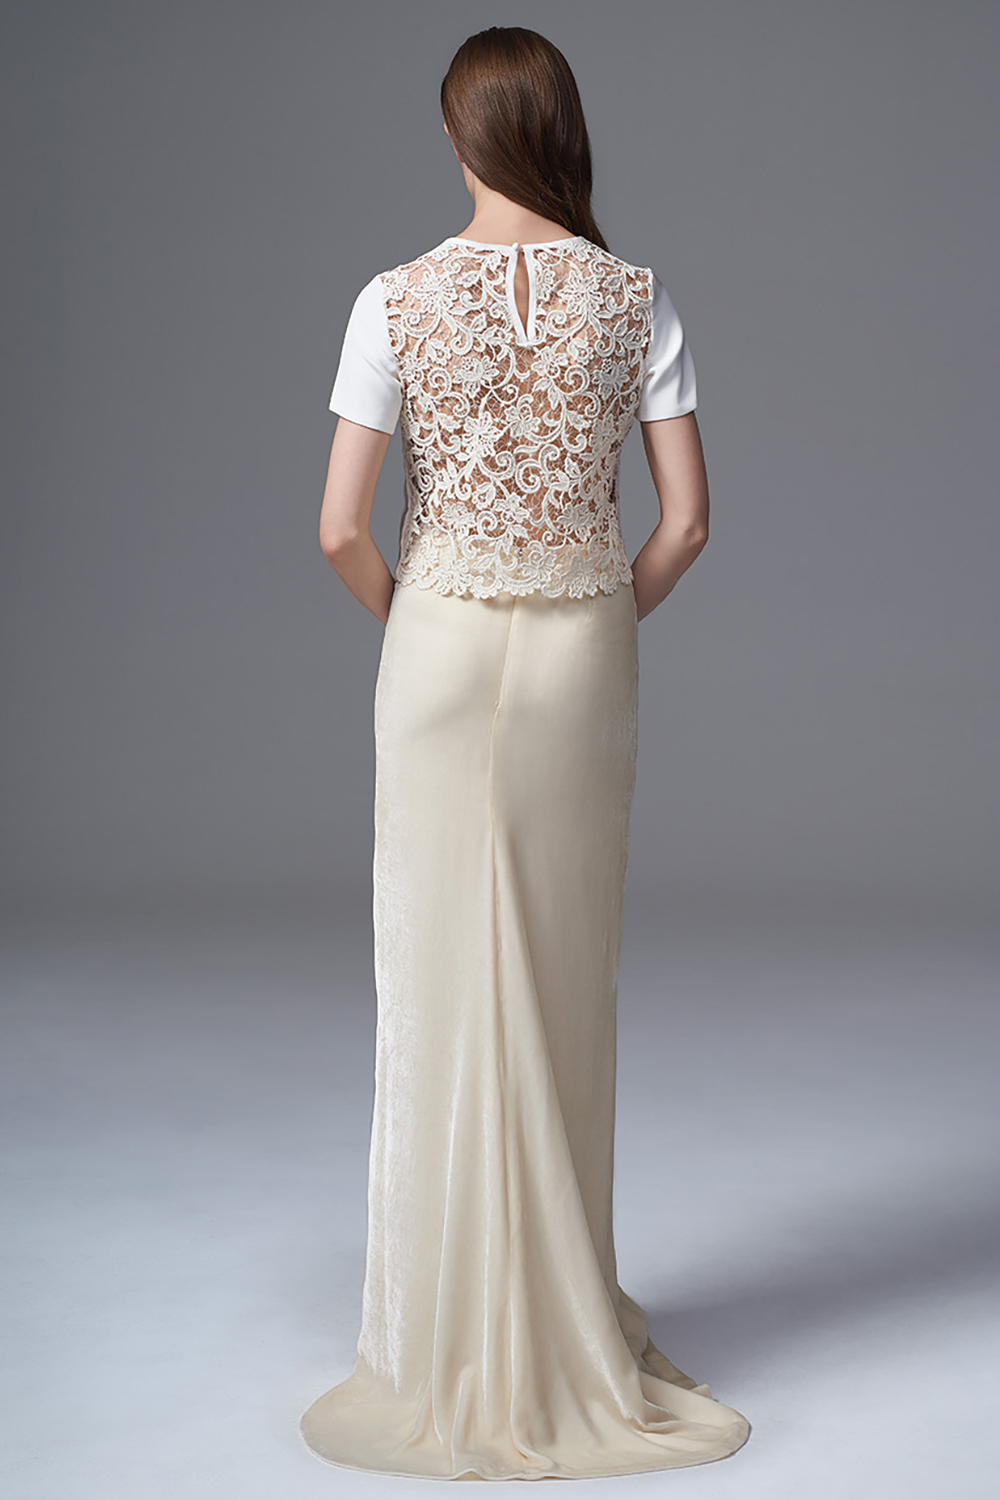 THE MARTHA FRENCH GUIPURE AND CREPE TEE WORN WITH THE CELINE VELVET SKIRT. BRIDAL WEDDING DRESS BY HALFPENNY LONDON